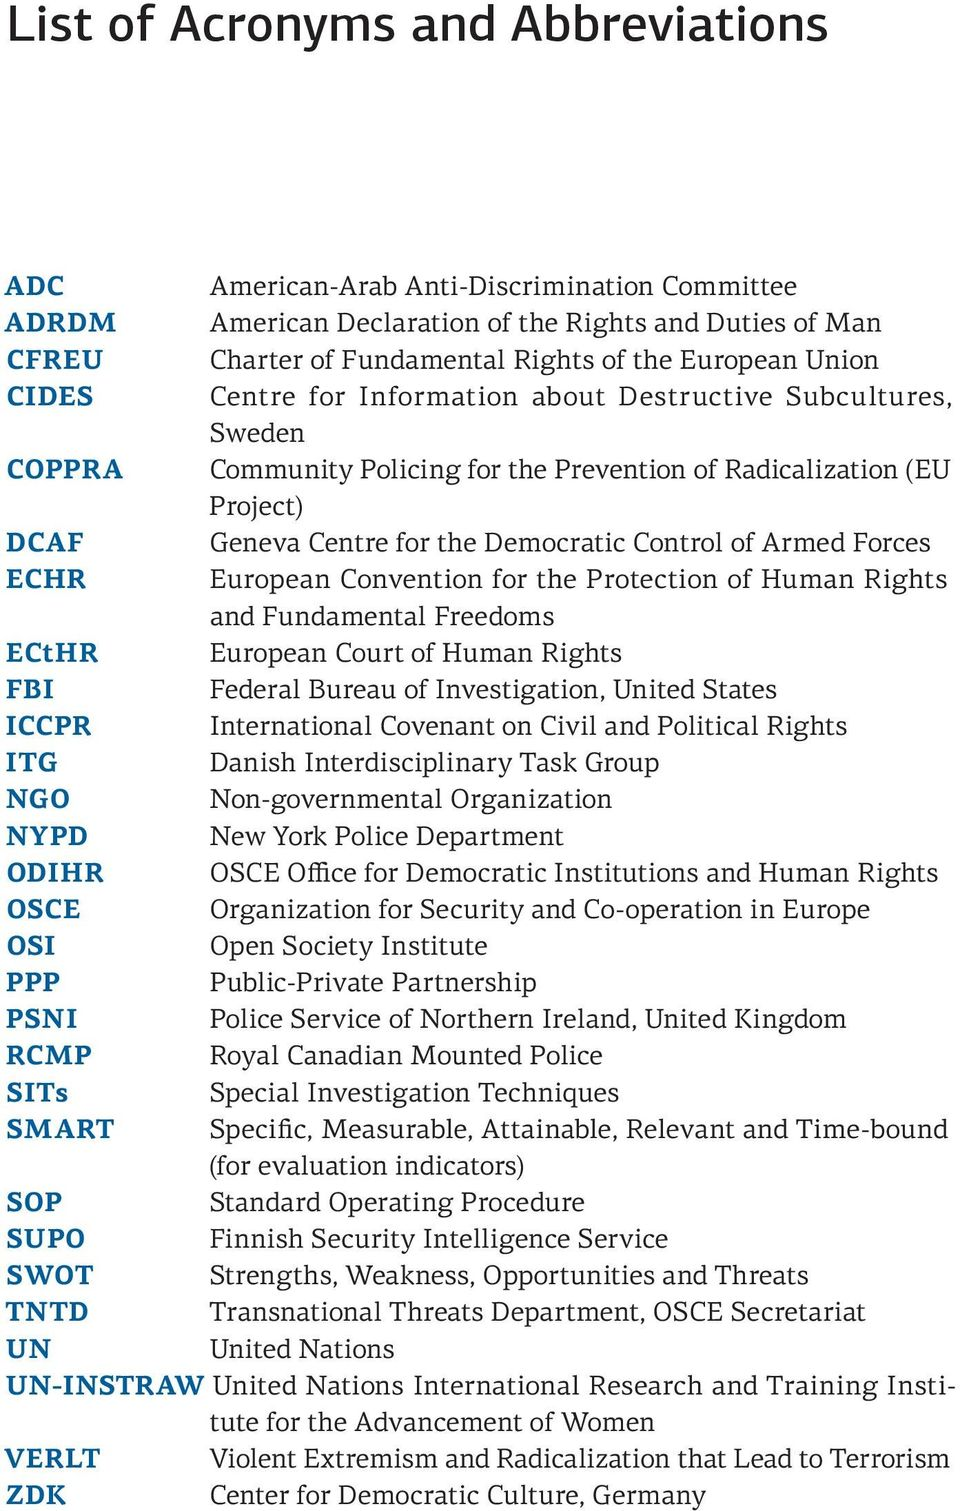 Forces ECHR European Convention for the Protection of Human Rights and Fundamental Freedoms ECtHR European Court of Human Rights FBI Federal Bureau of Investigation, United States ICCPR International